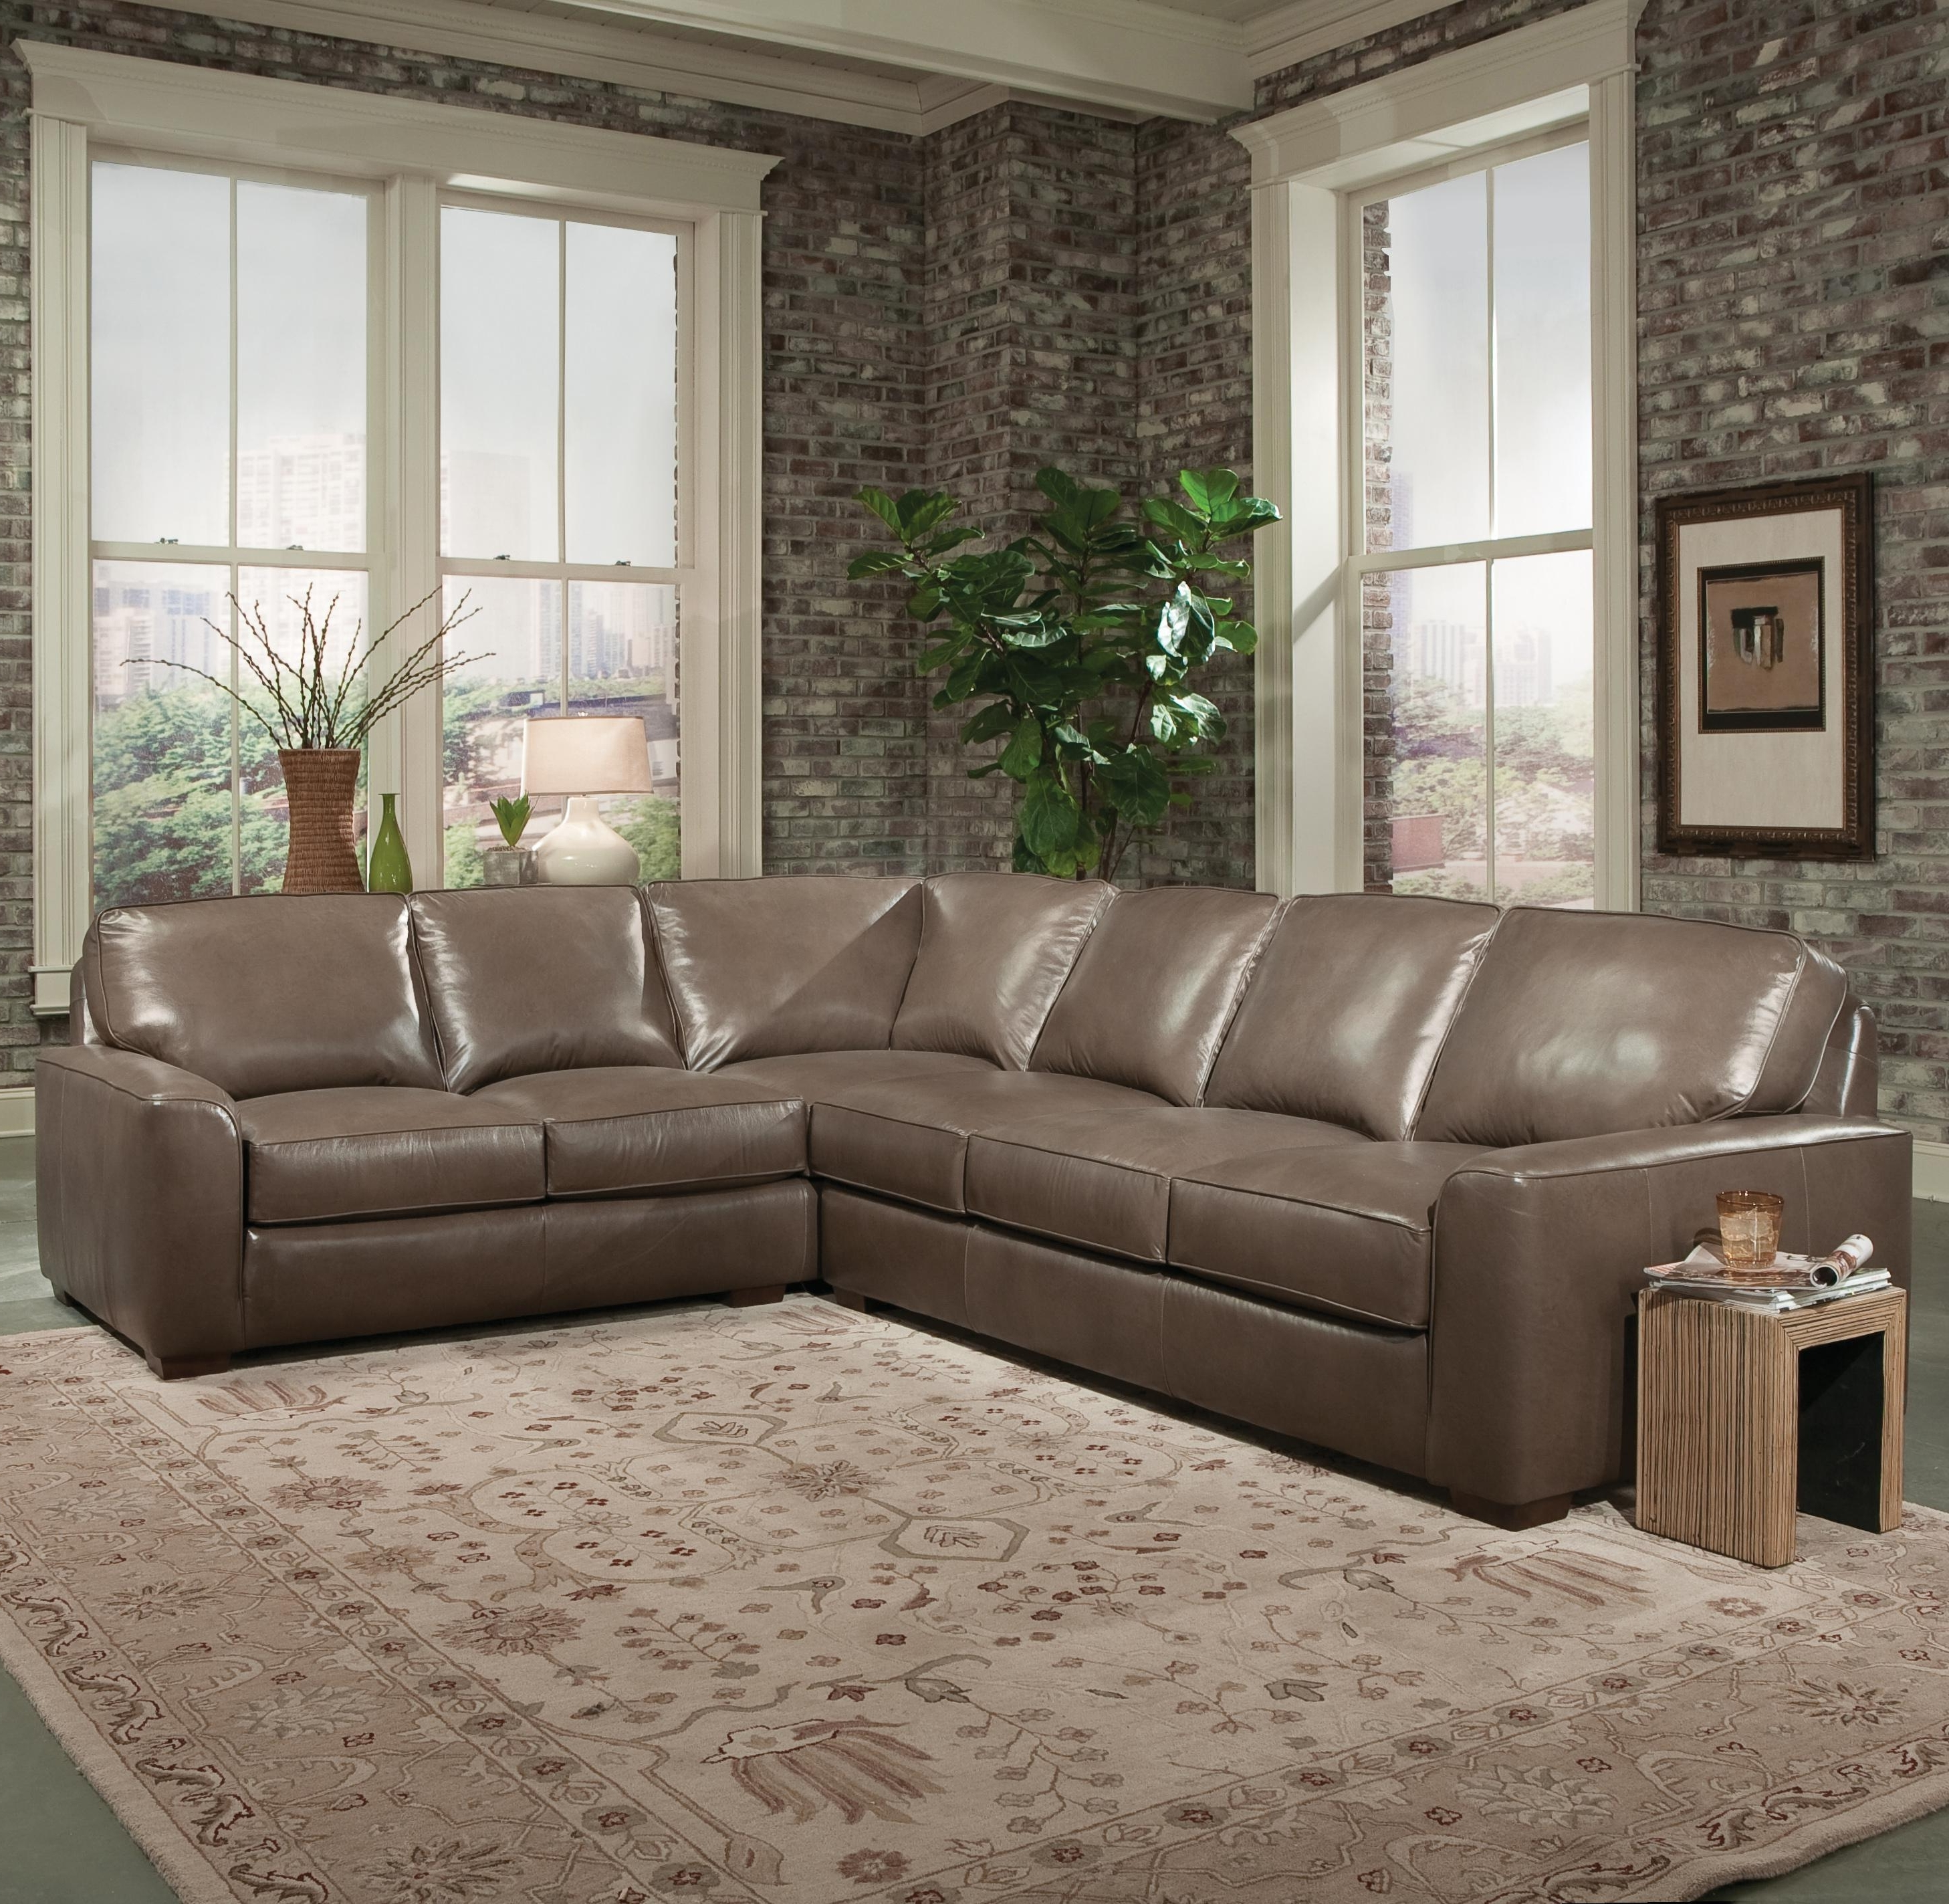 Recent Ivan Smith Sectional Sofas In Furniture : Amazing Darvin Furniture Outlet Fresh Ivan Smith (View 16 of 20)